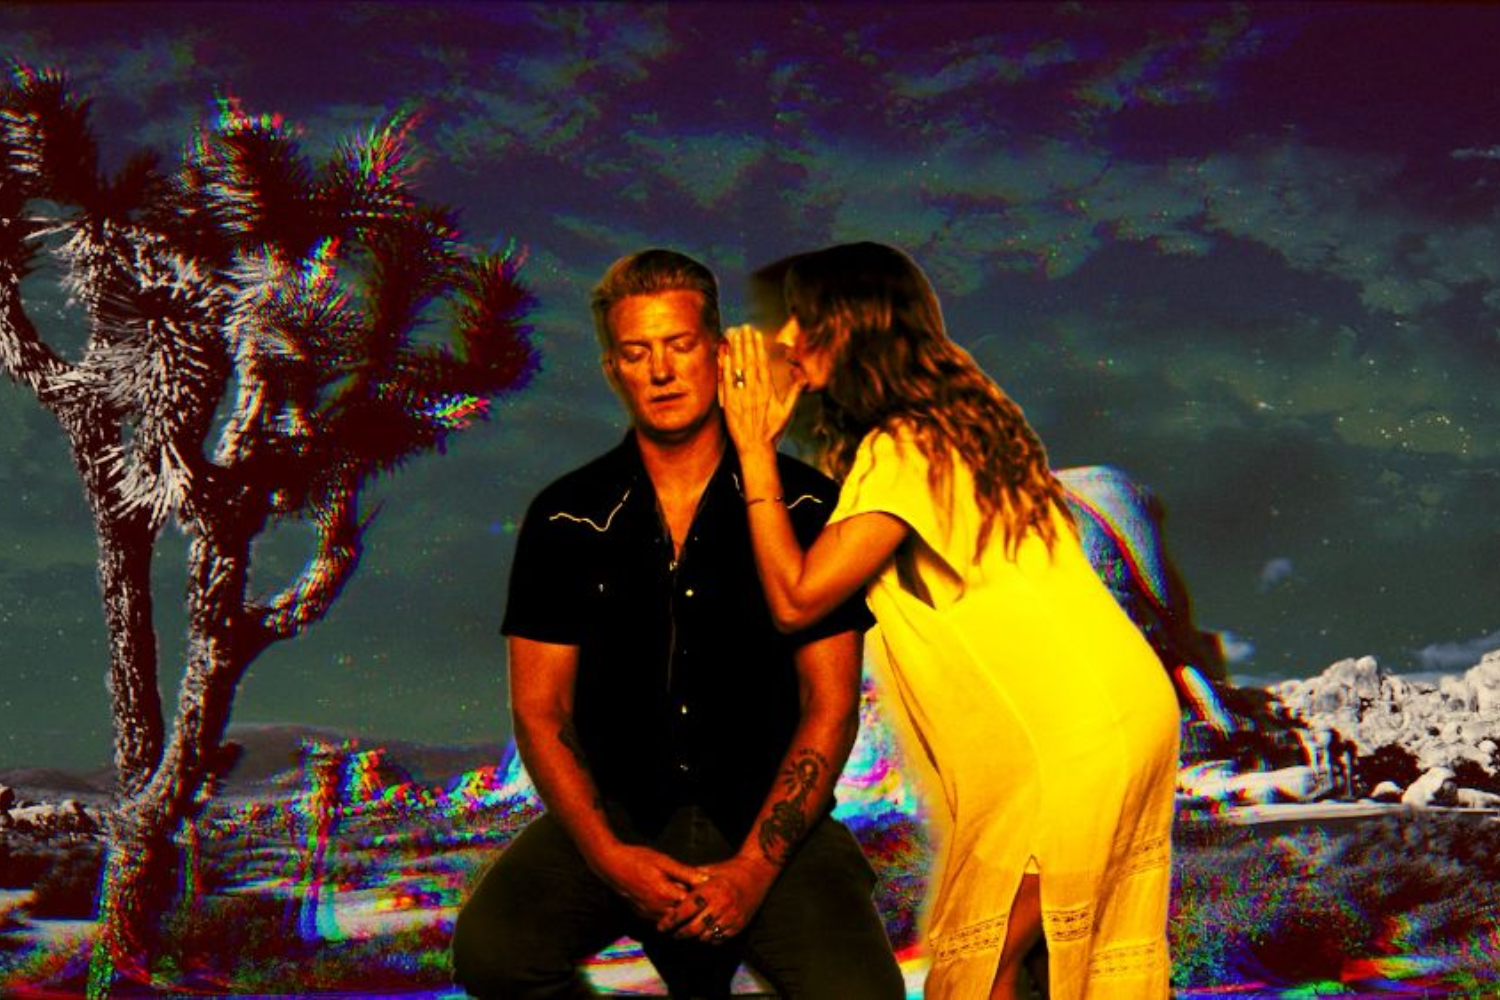 Josh Homme heads out into the desert in trippy Desert Sessions 'If You Run' video